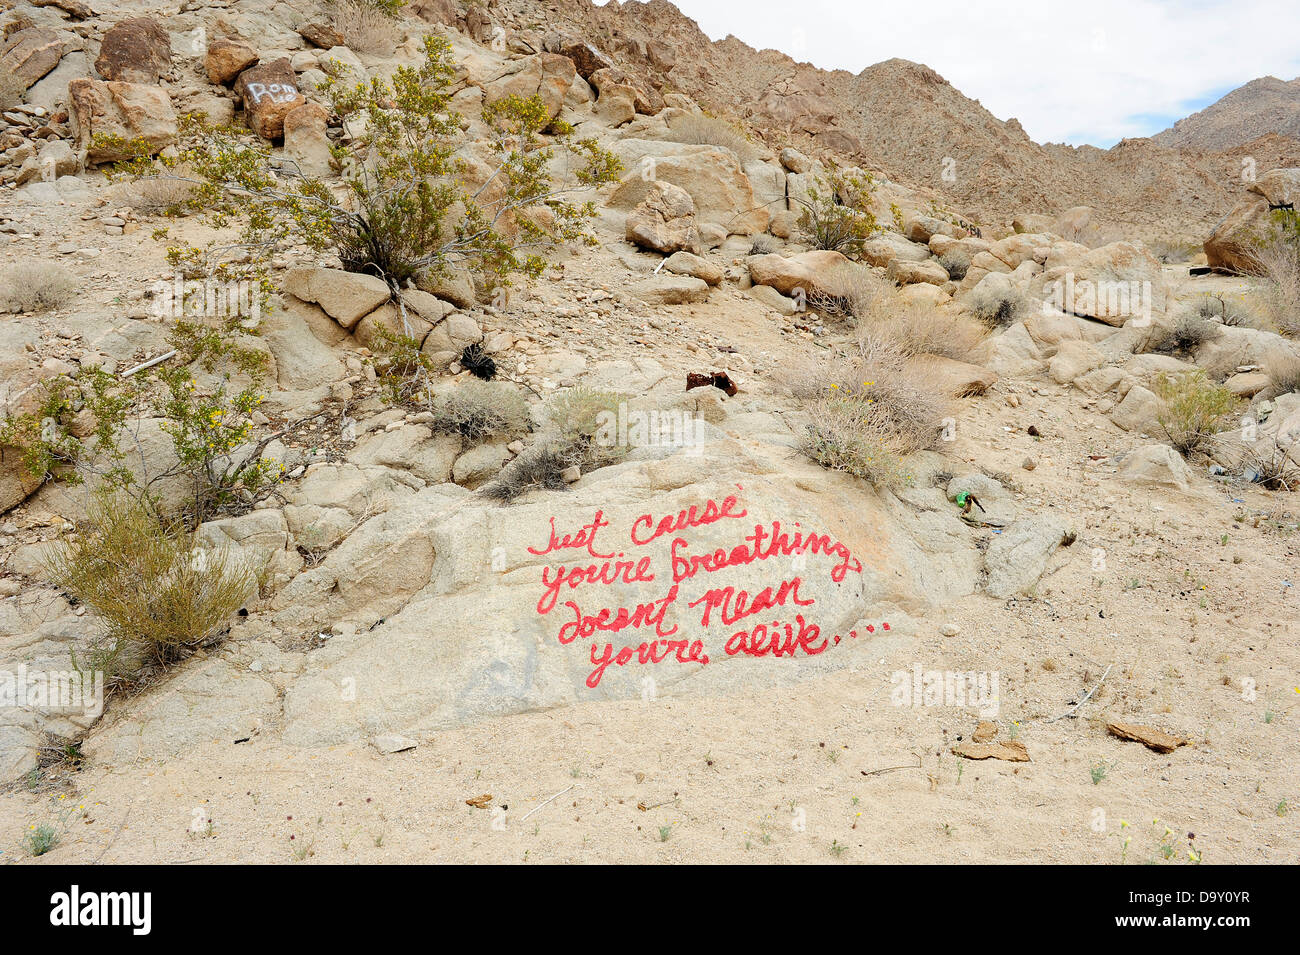 Mojave desert California USA, Graffiti on rocks that reads: Just because you're breathing doesn't mean you're alive.... Stock Photo